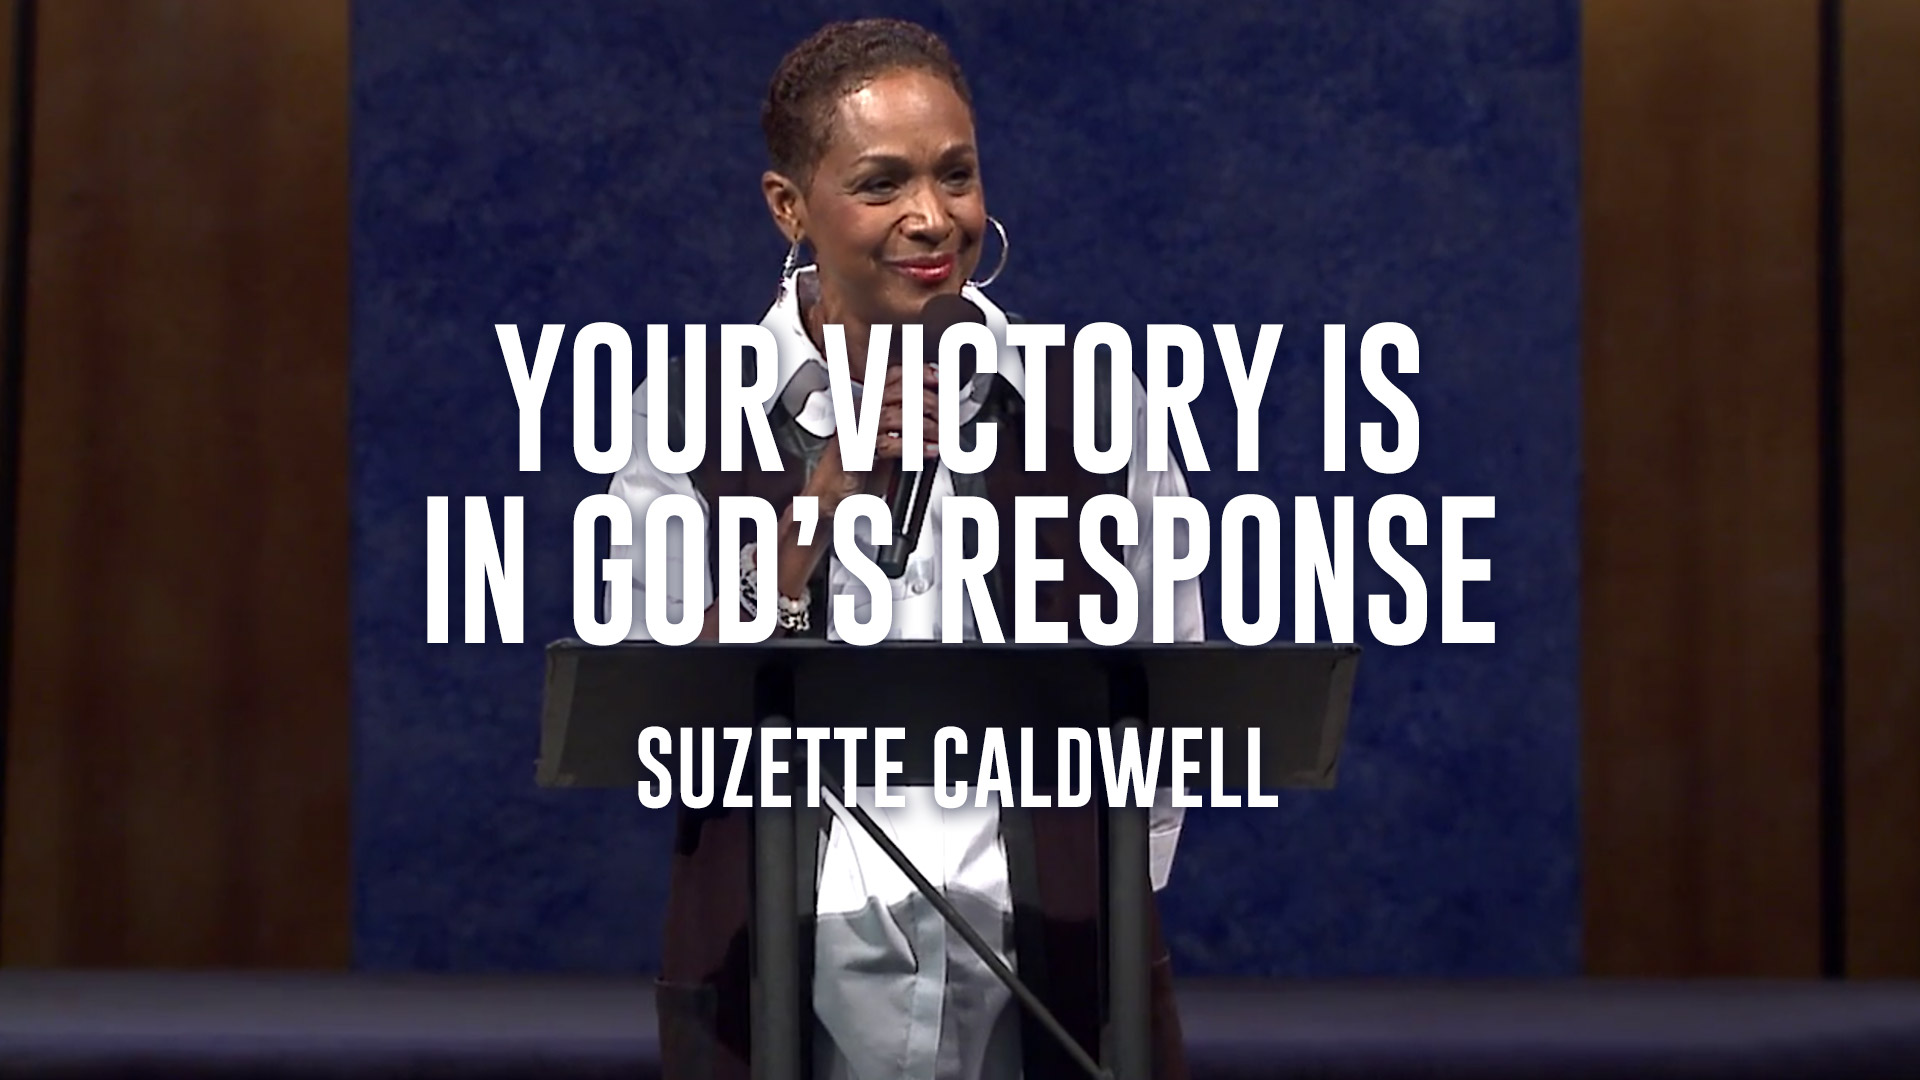 Your Victory Is In God's Response - Suzette Caldwell